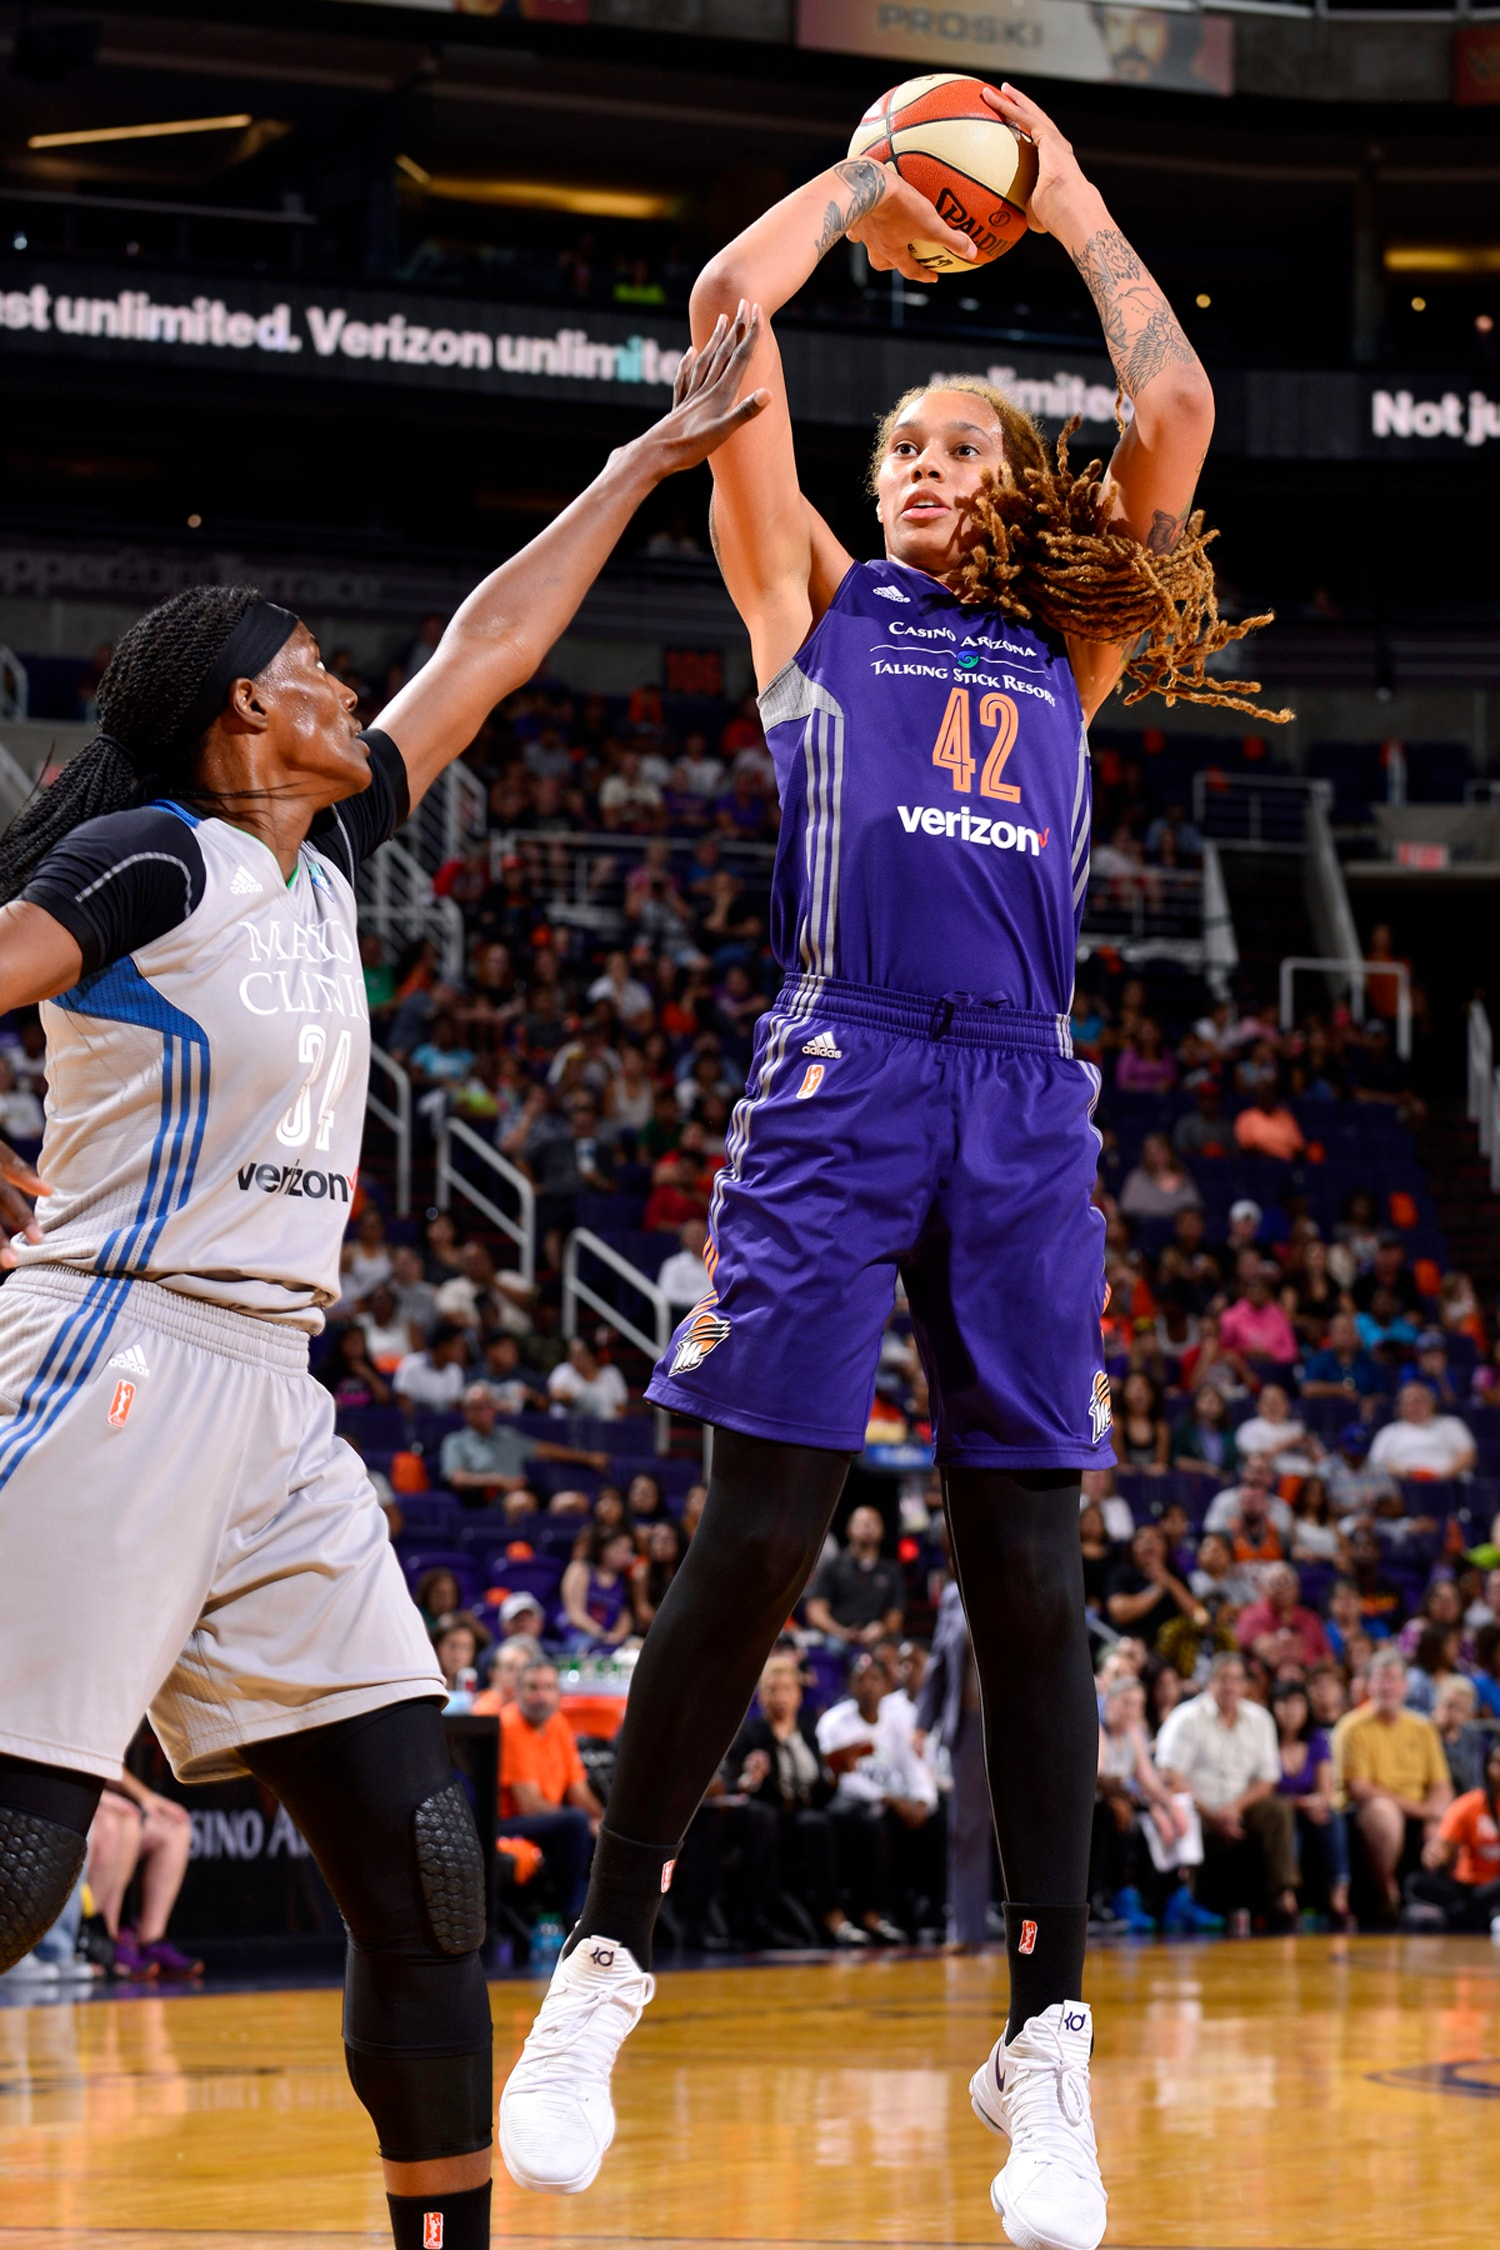 Phoenix Mercury Minnesota Lynx July 14, 2017